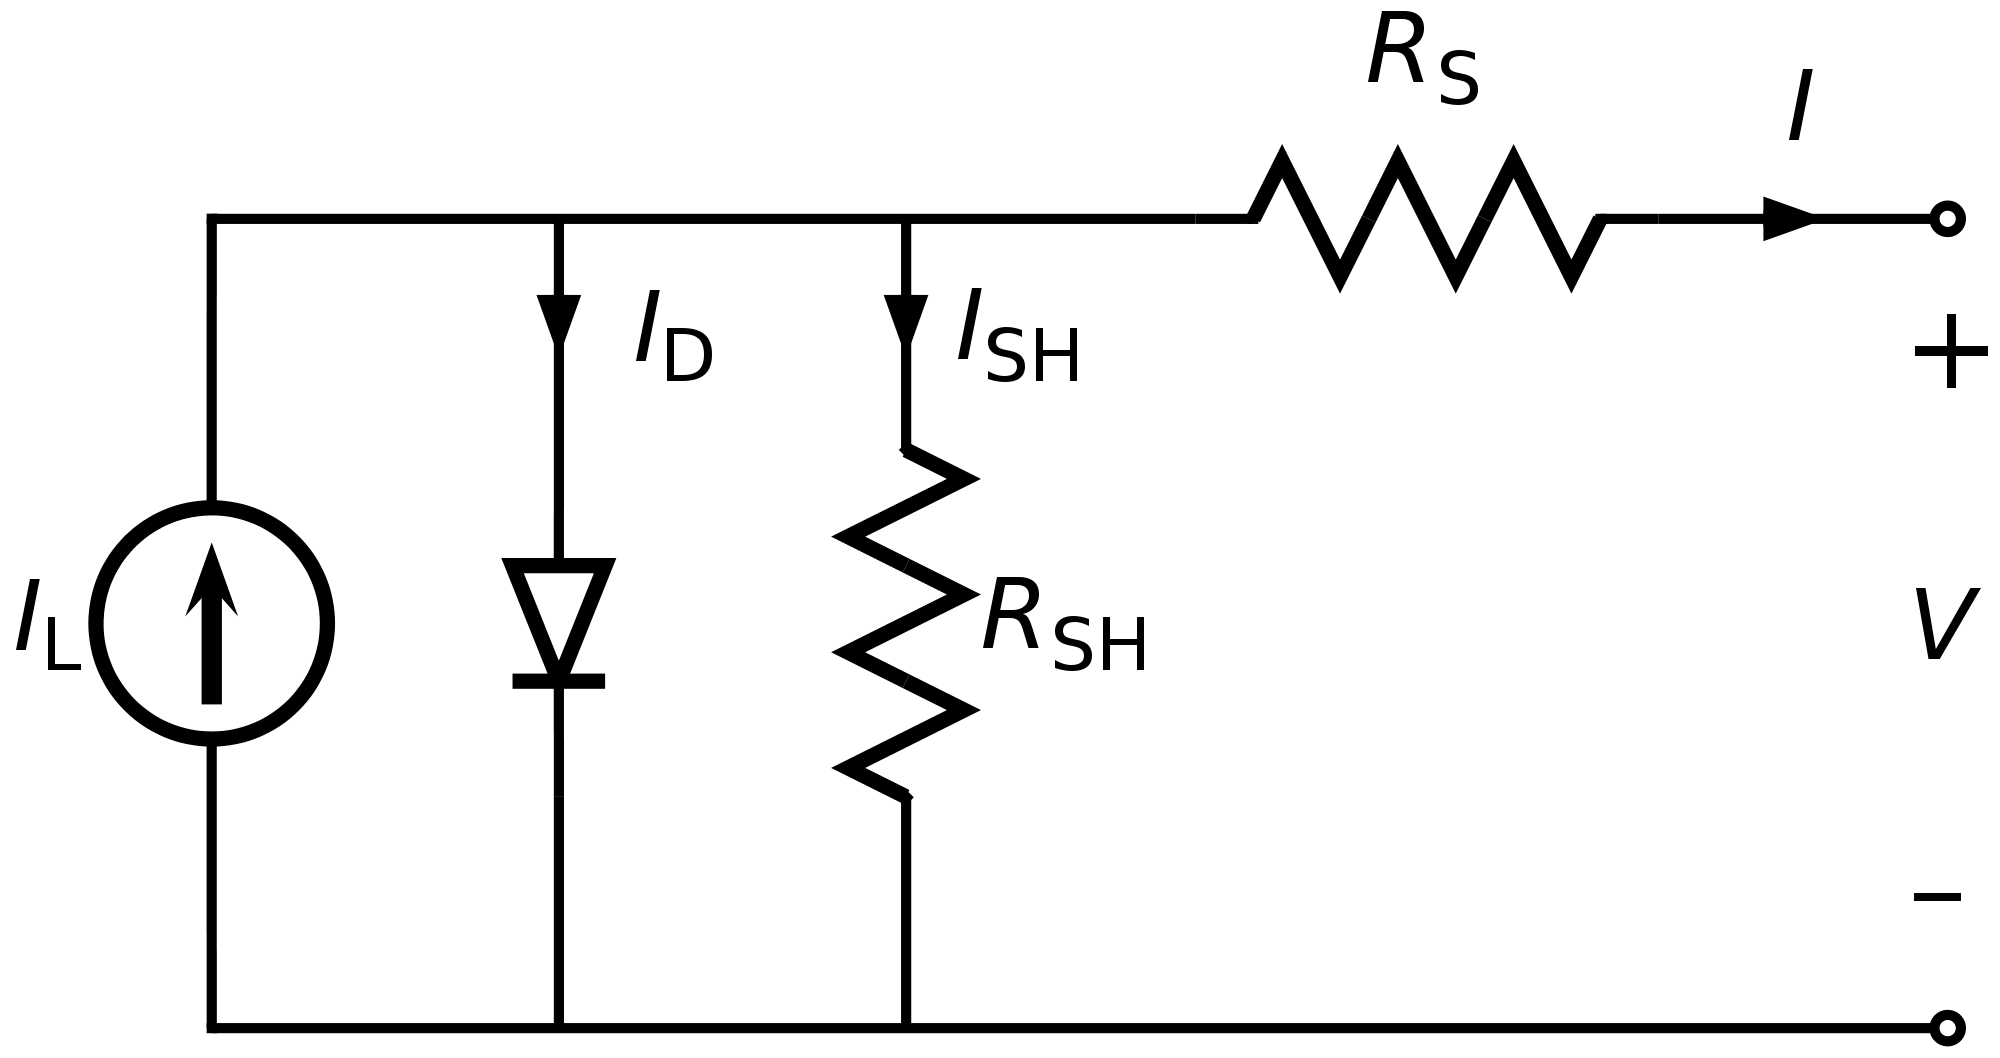 Power Supply Schematic Symbol